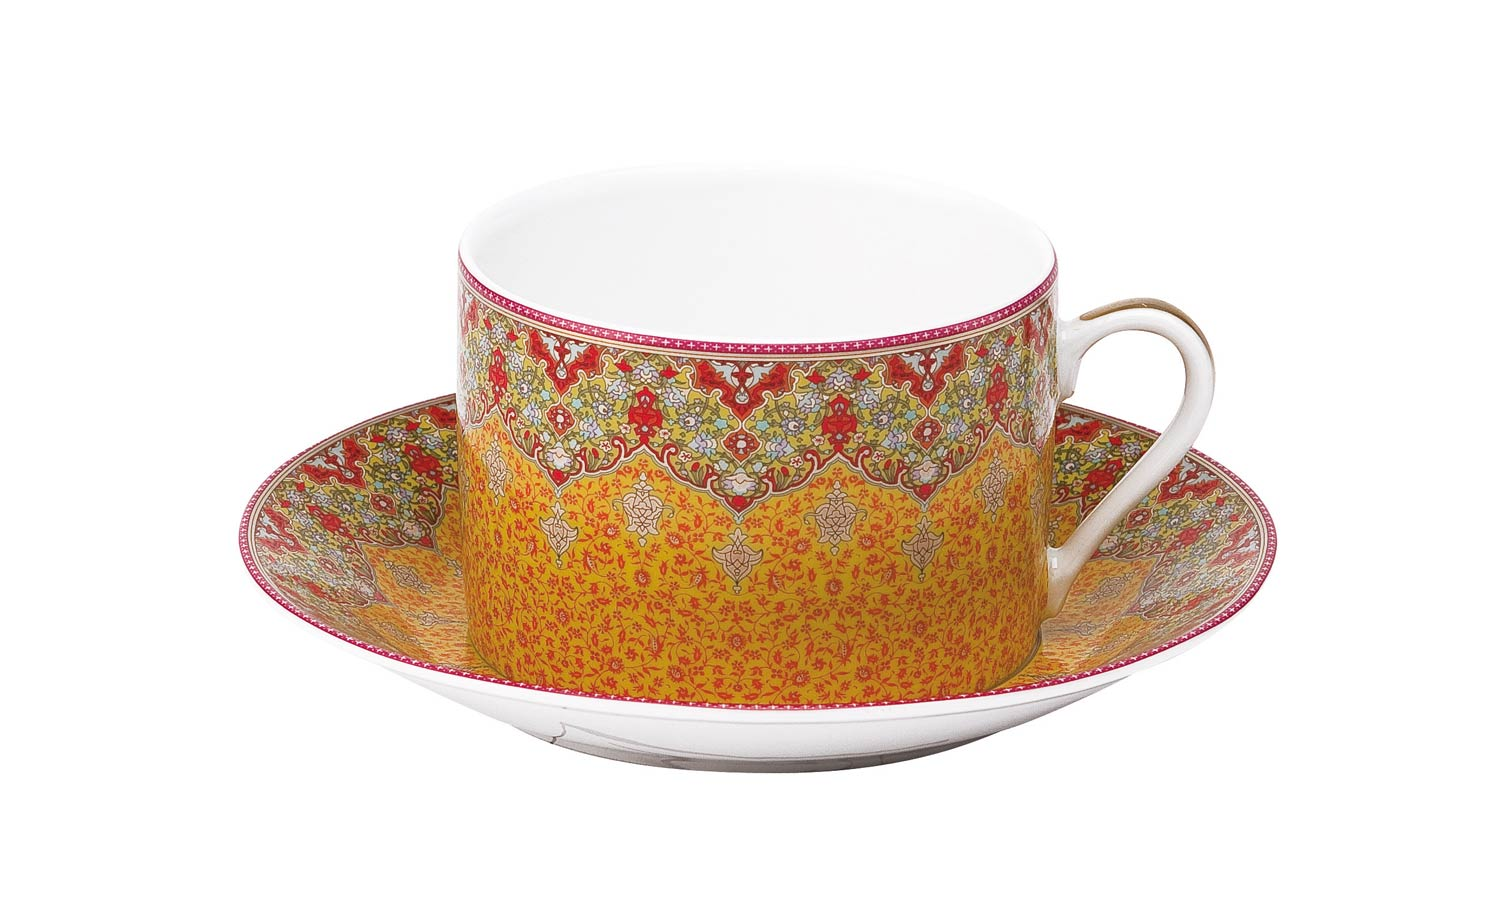 Philippe Deshoulieres Dhara red breakfast saucer